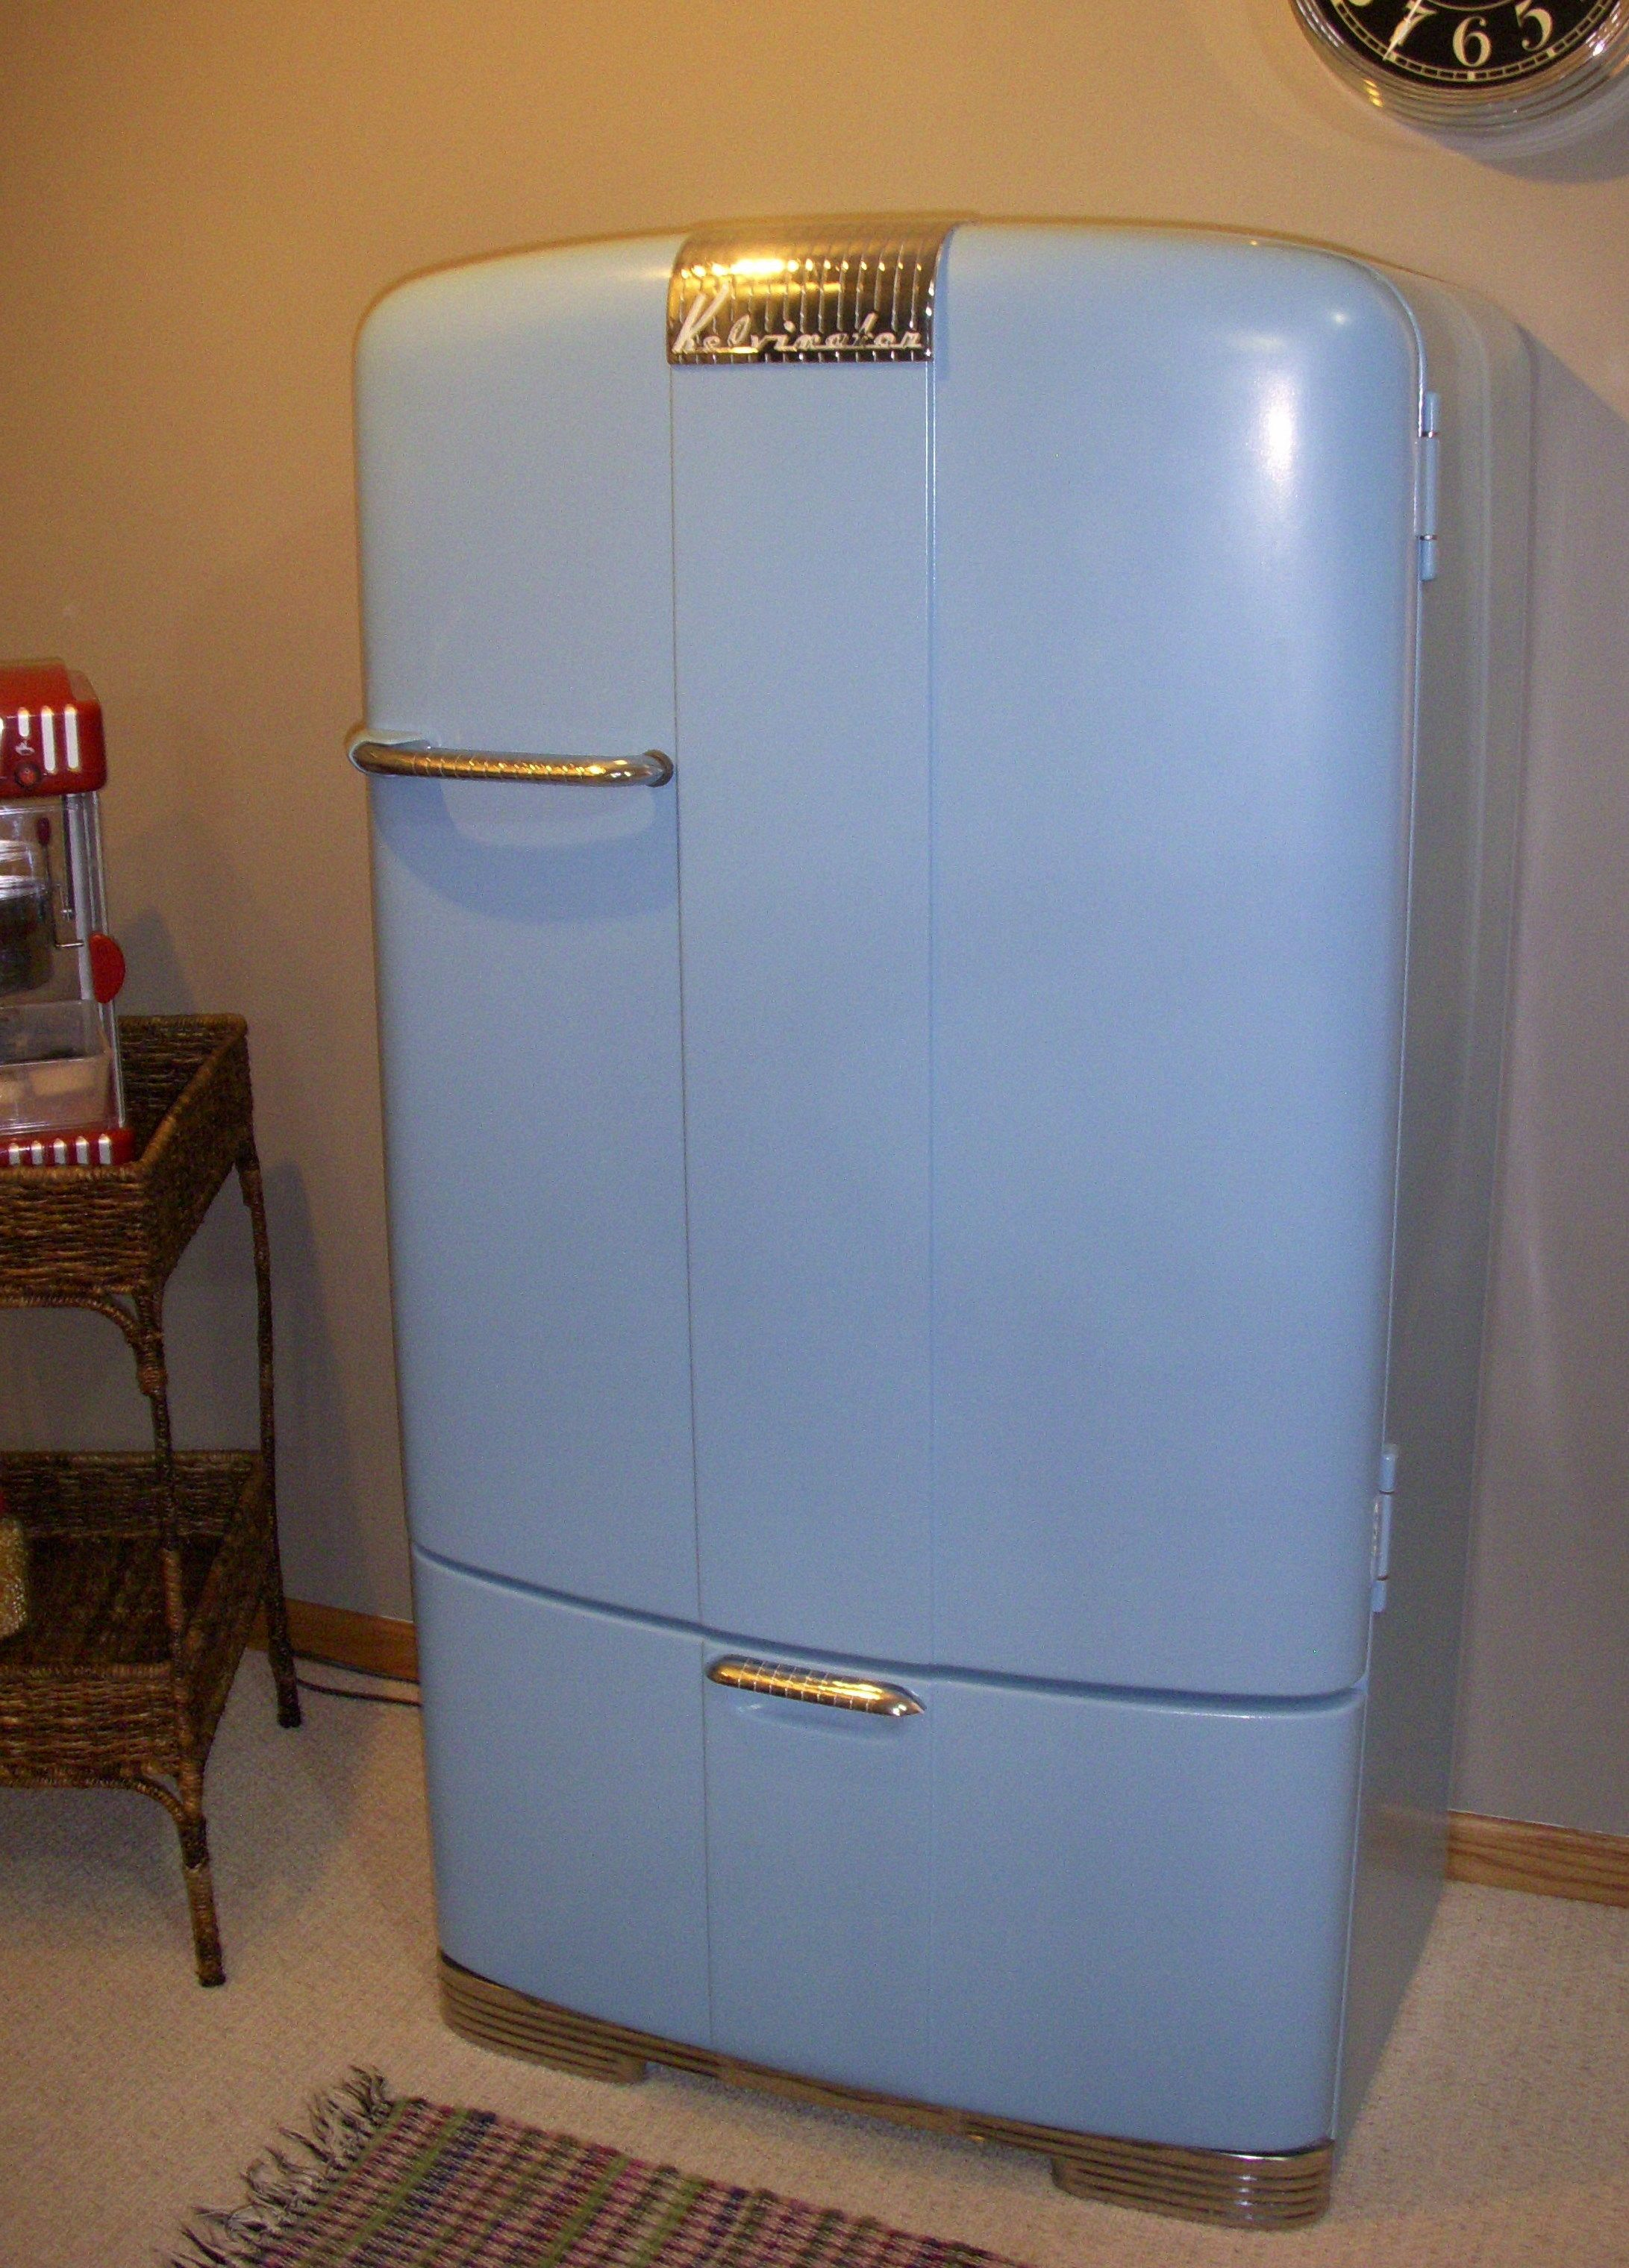 Uncategorized Retro Kitchen Appliance For Sale a retro red refrigerator appliances old kelvinator we had white one way back when google image result vintage refrigeratorvintage kitchenrustic